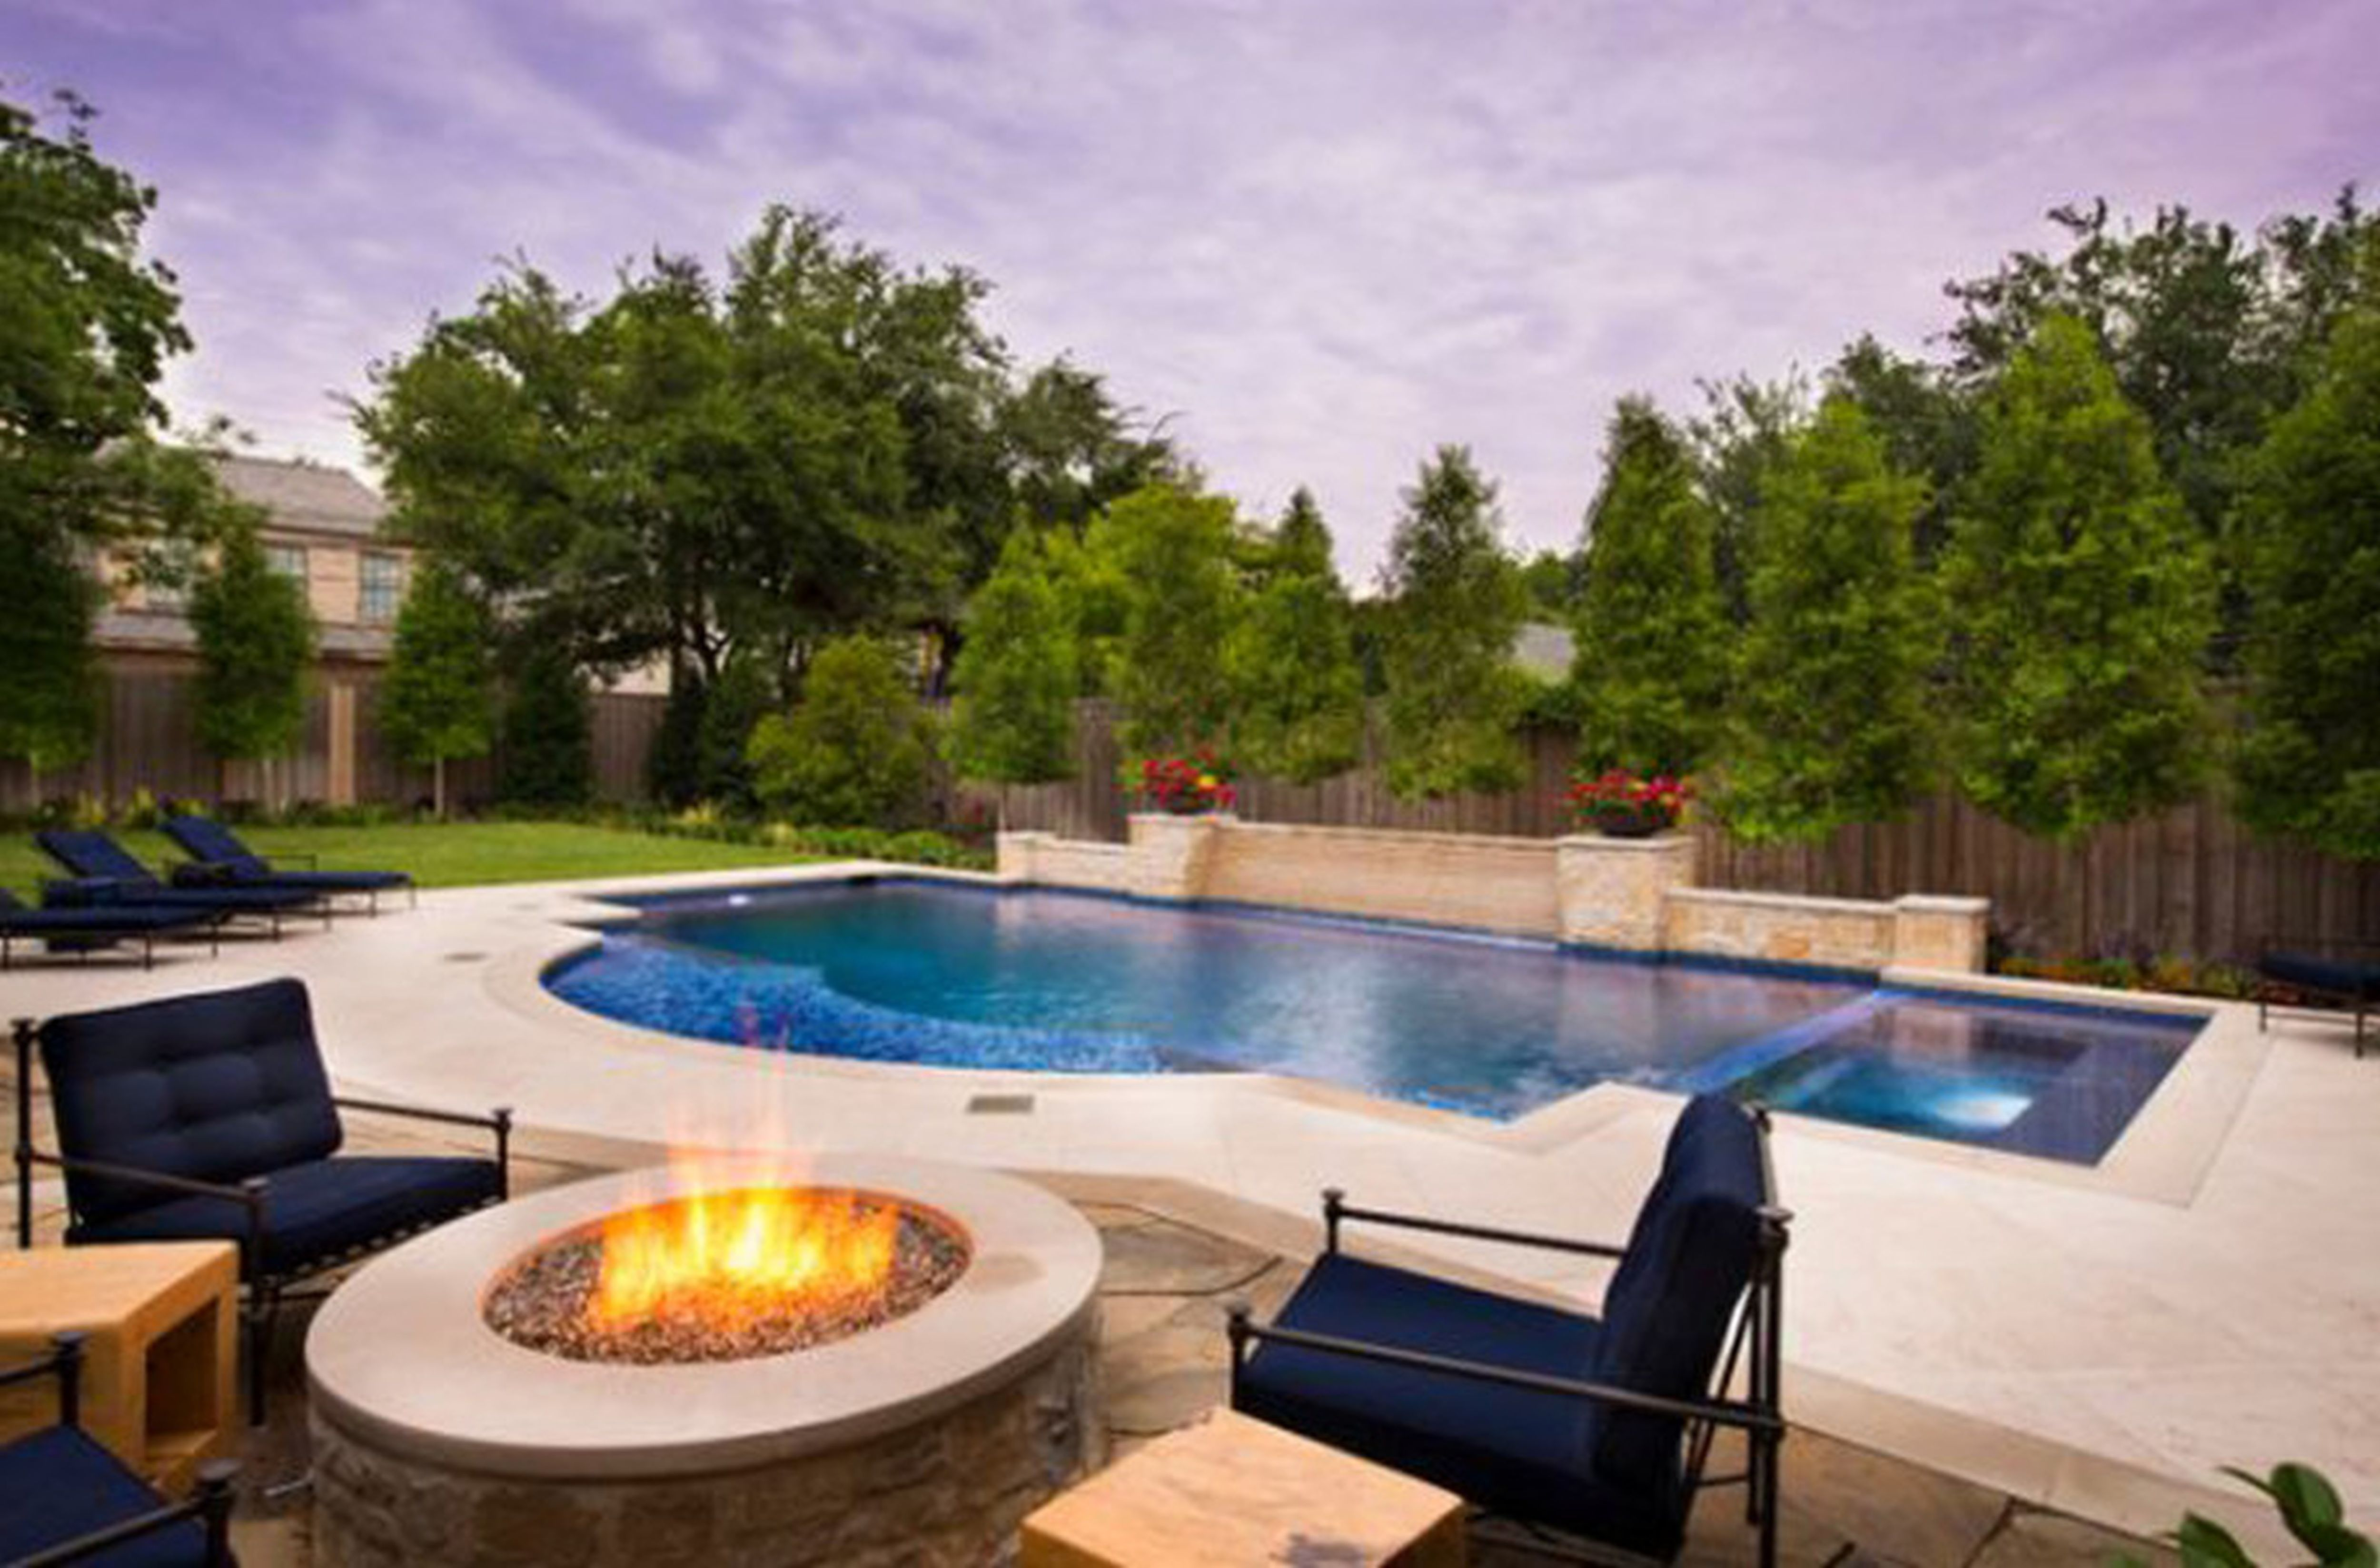 Backyard Pool Designs For Small Yards Poolideas Backyard Pool Swimming Pools Backyard Small Backyard Pools